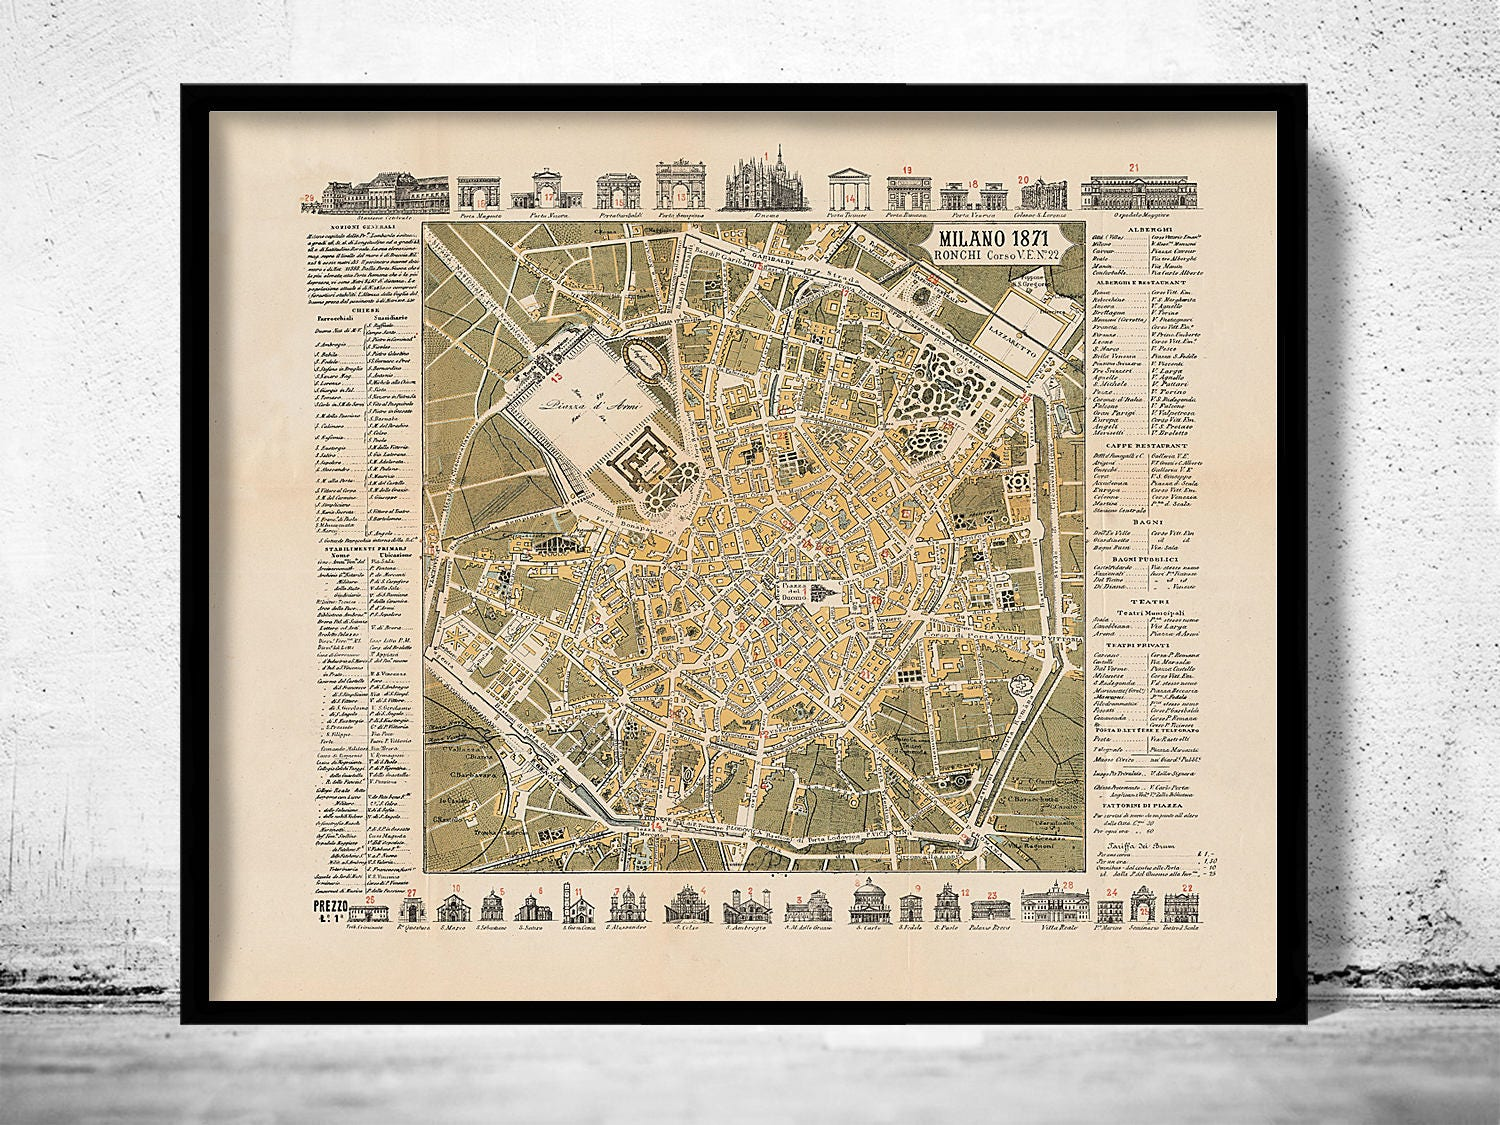 Old map of milan milano 1871 italy zoom gumiabroncs Choice Image